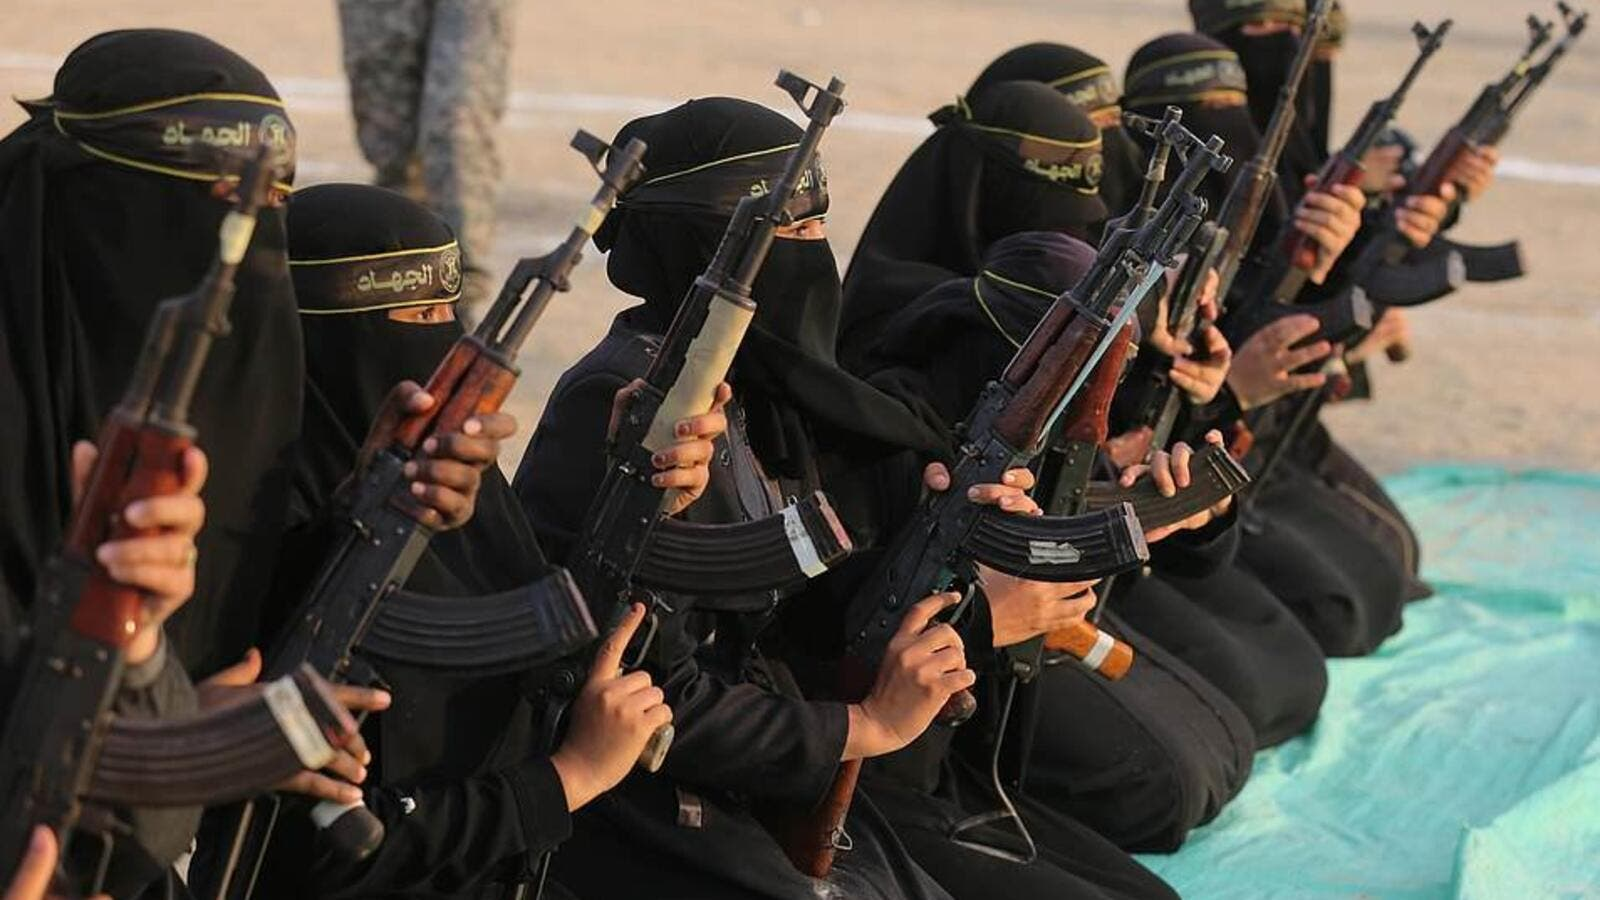 The women of the al-Quds Brigades holding Kalashnikov rifles and poised for action during the exercise at Khan Yunis on the southern section of the Gaza Strip (Shutterstock)